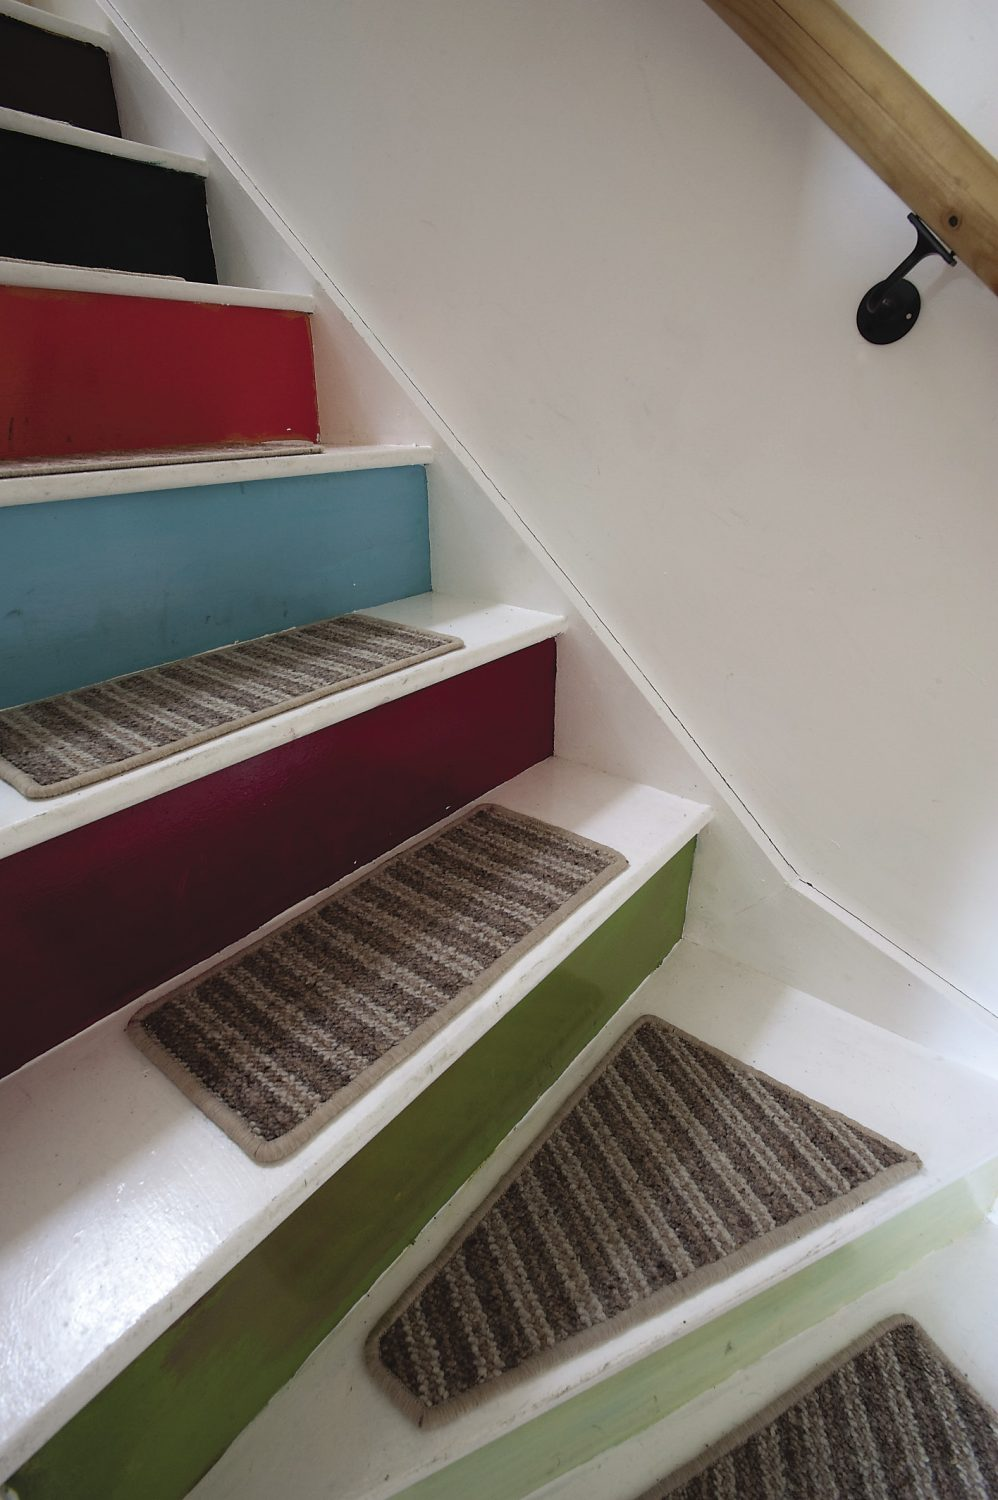 Brightly painted steps lead up to the bedrooms on the second floor.